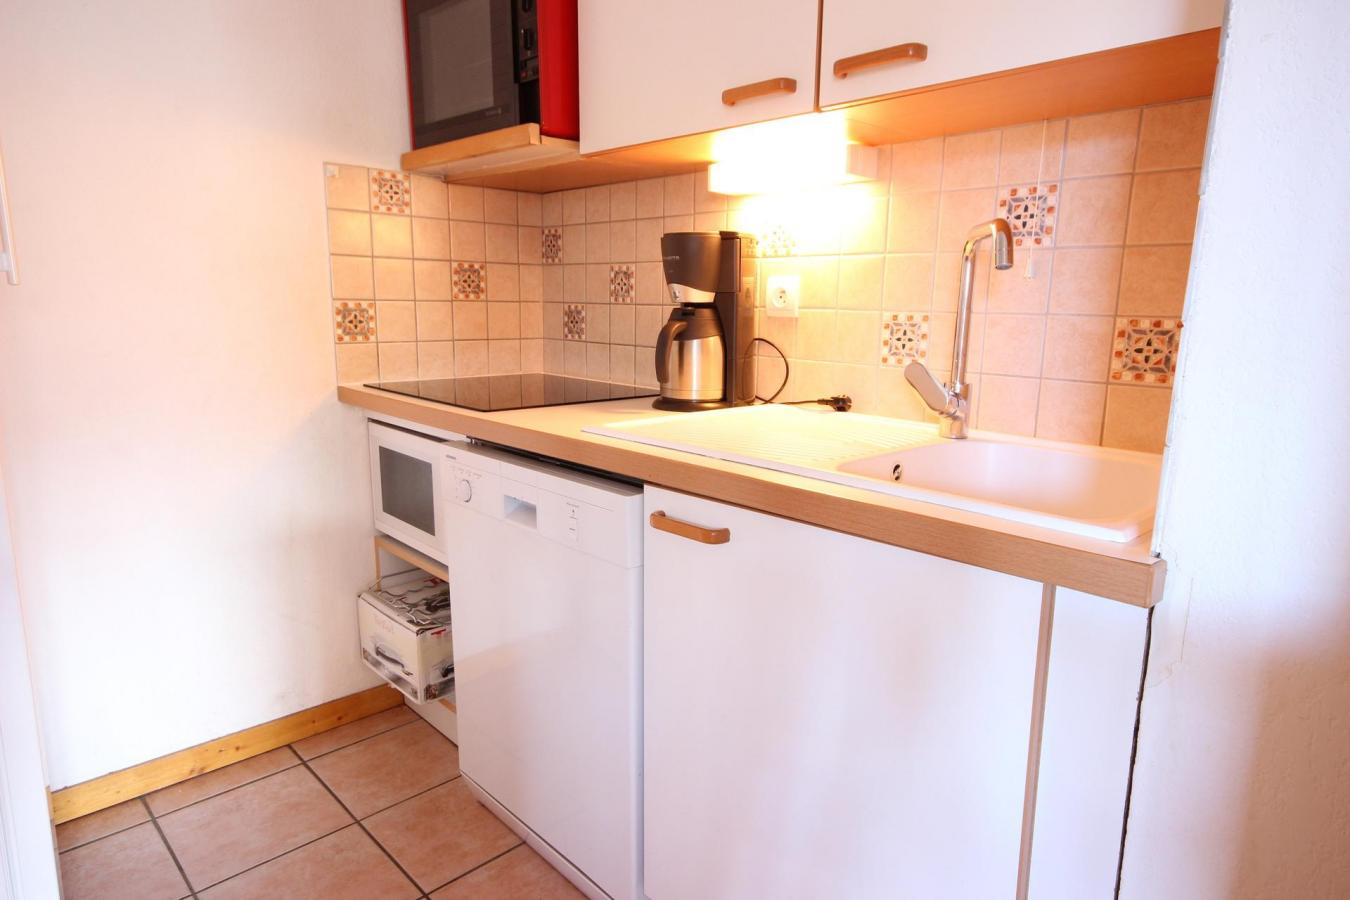 Location au ski Appartement 3 pièces 8 personnes - Residence Edelweiss - Peisey-Vallandry